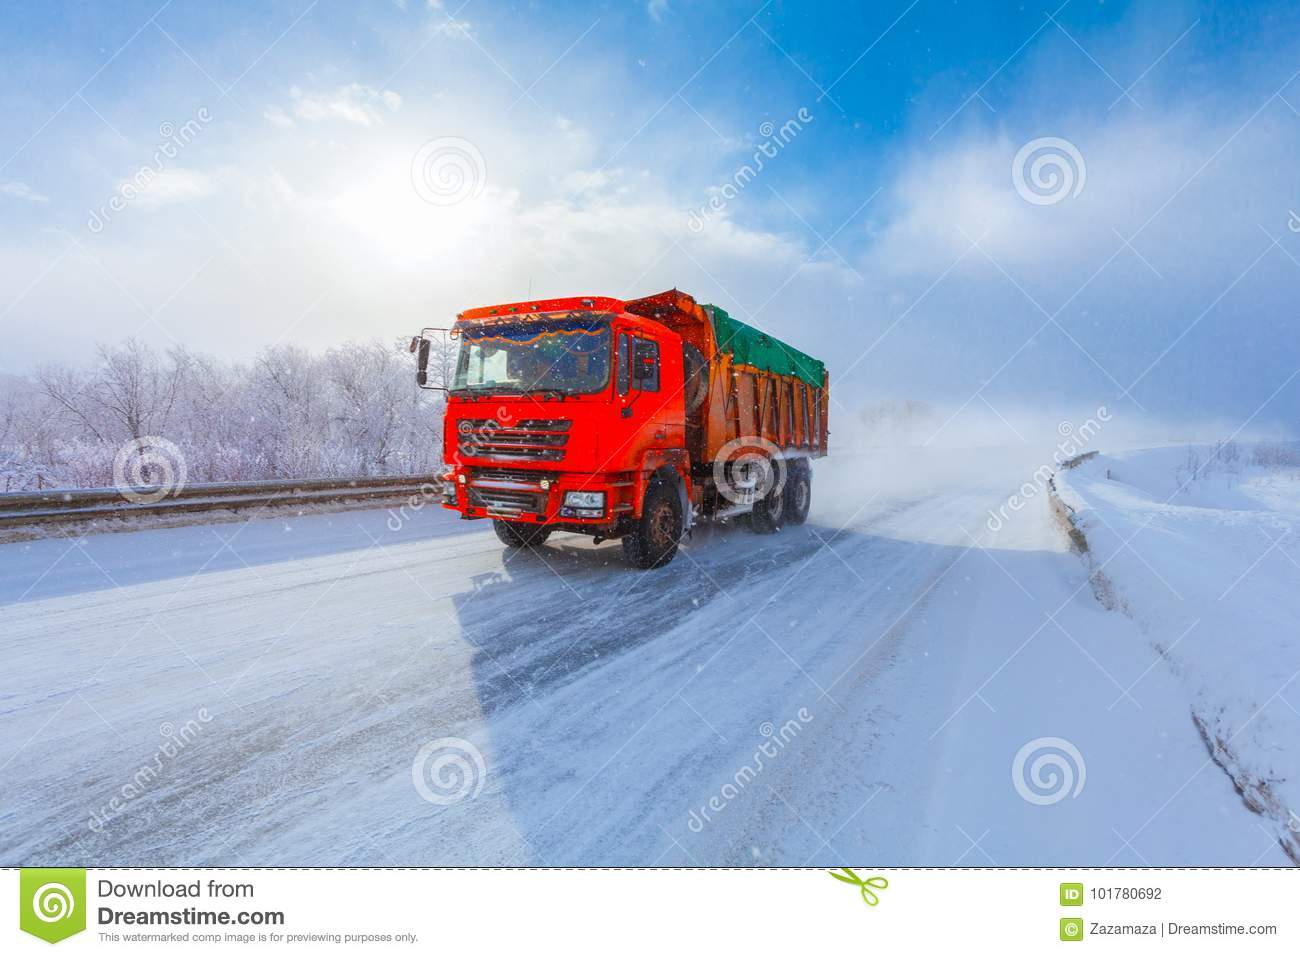 Motion blur of a red dump truck with cargo on winter road.